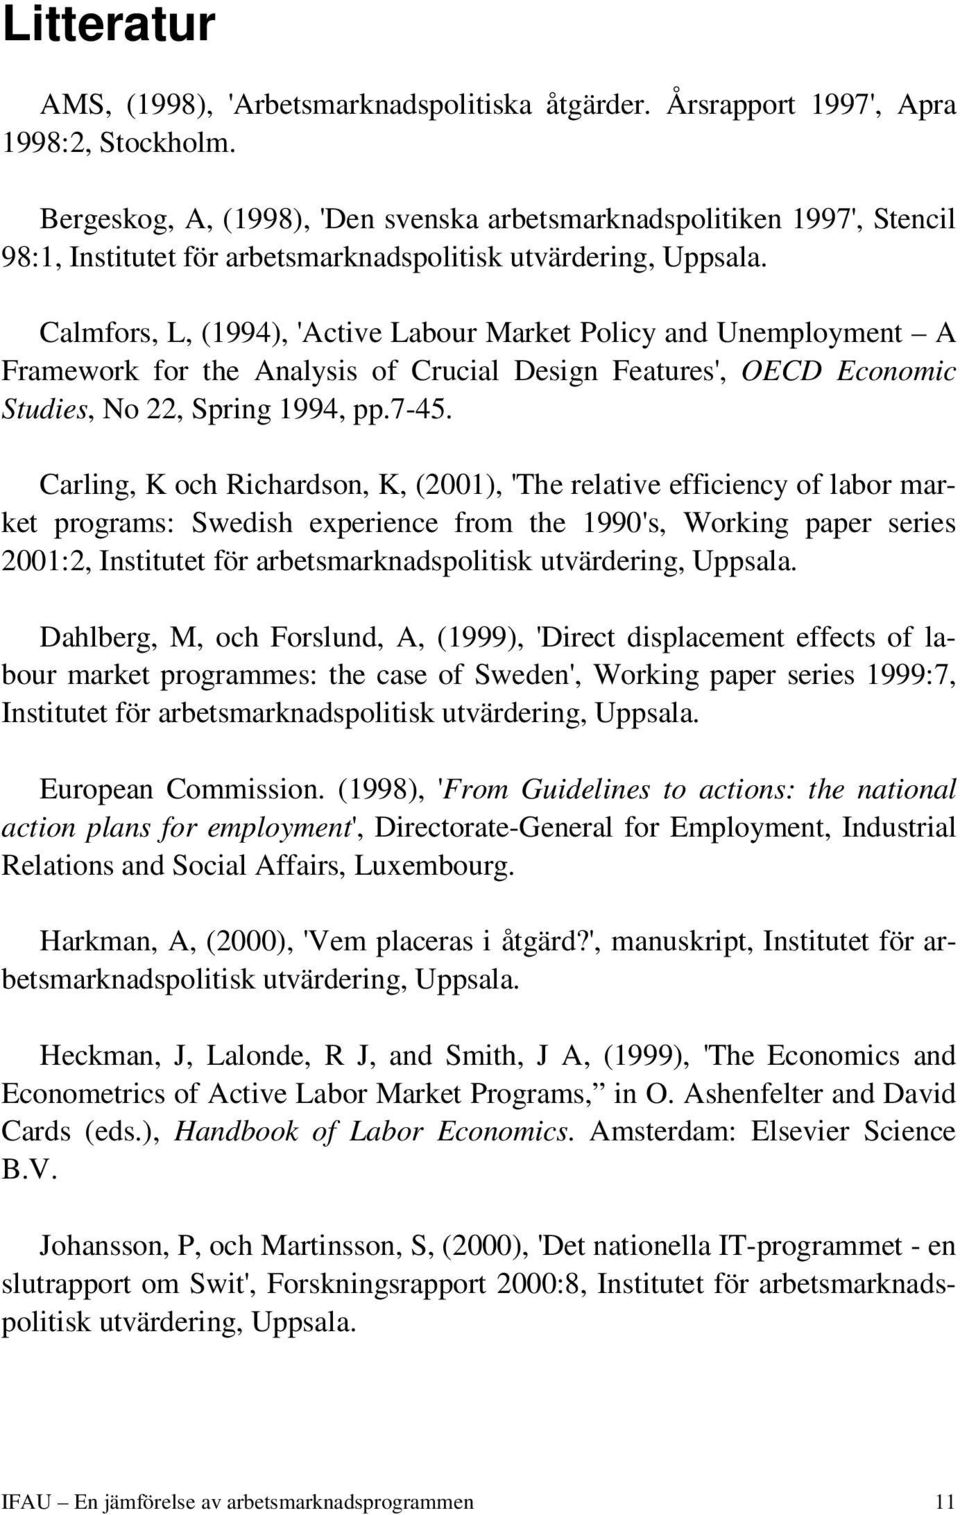 Calmfors, L, (1994), 'Active Labour Market Policy and Unemployment A Framework for the Analysis of Crucial Design Features', OECD Economic Studies, No 22, Spring 1994, pp.7-45.